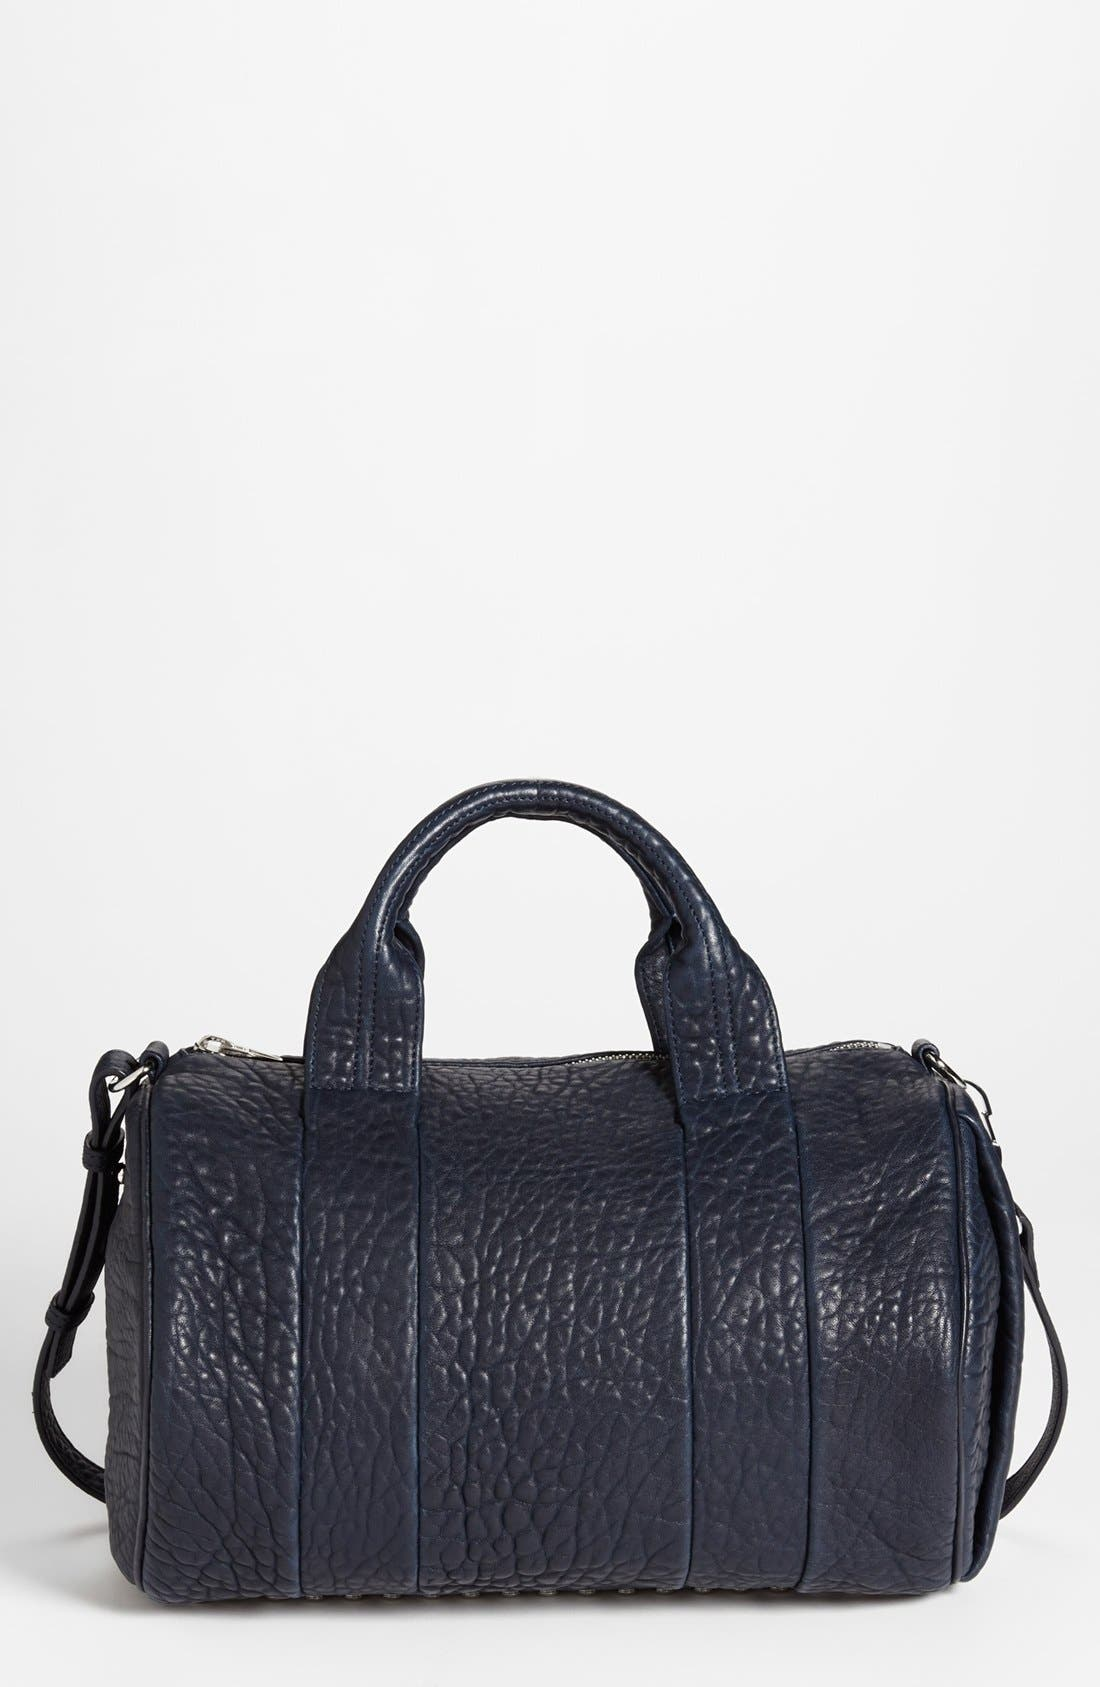 Main Image - Alexander Wang 'Rocco - Dumbo Rhodium' Leather Satchel